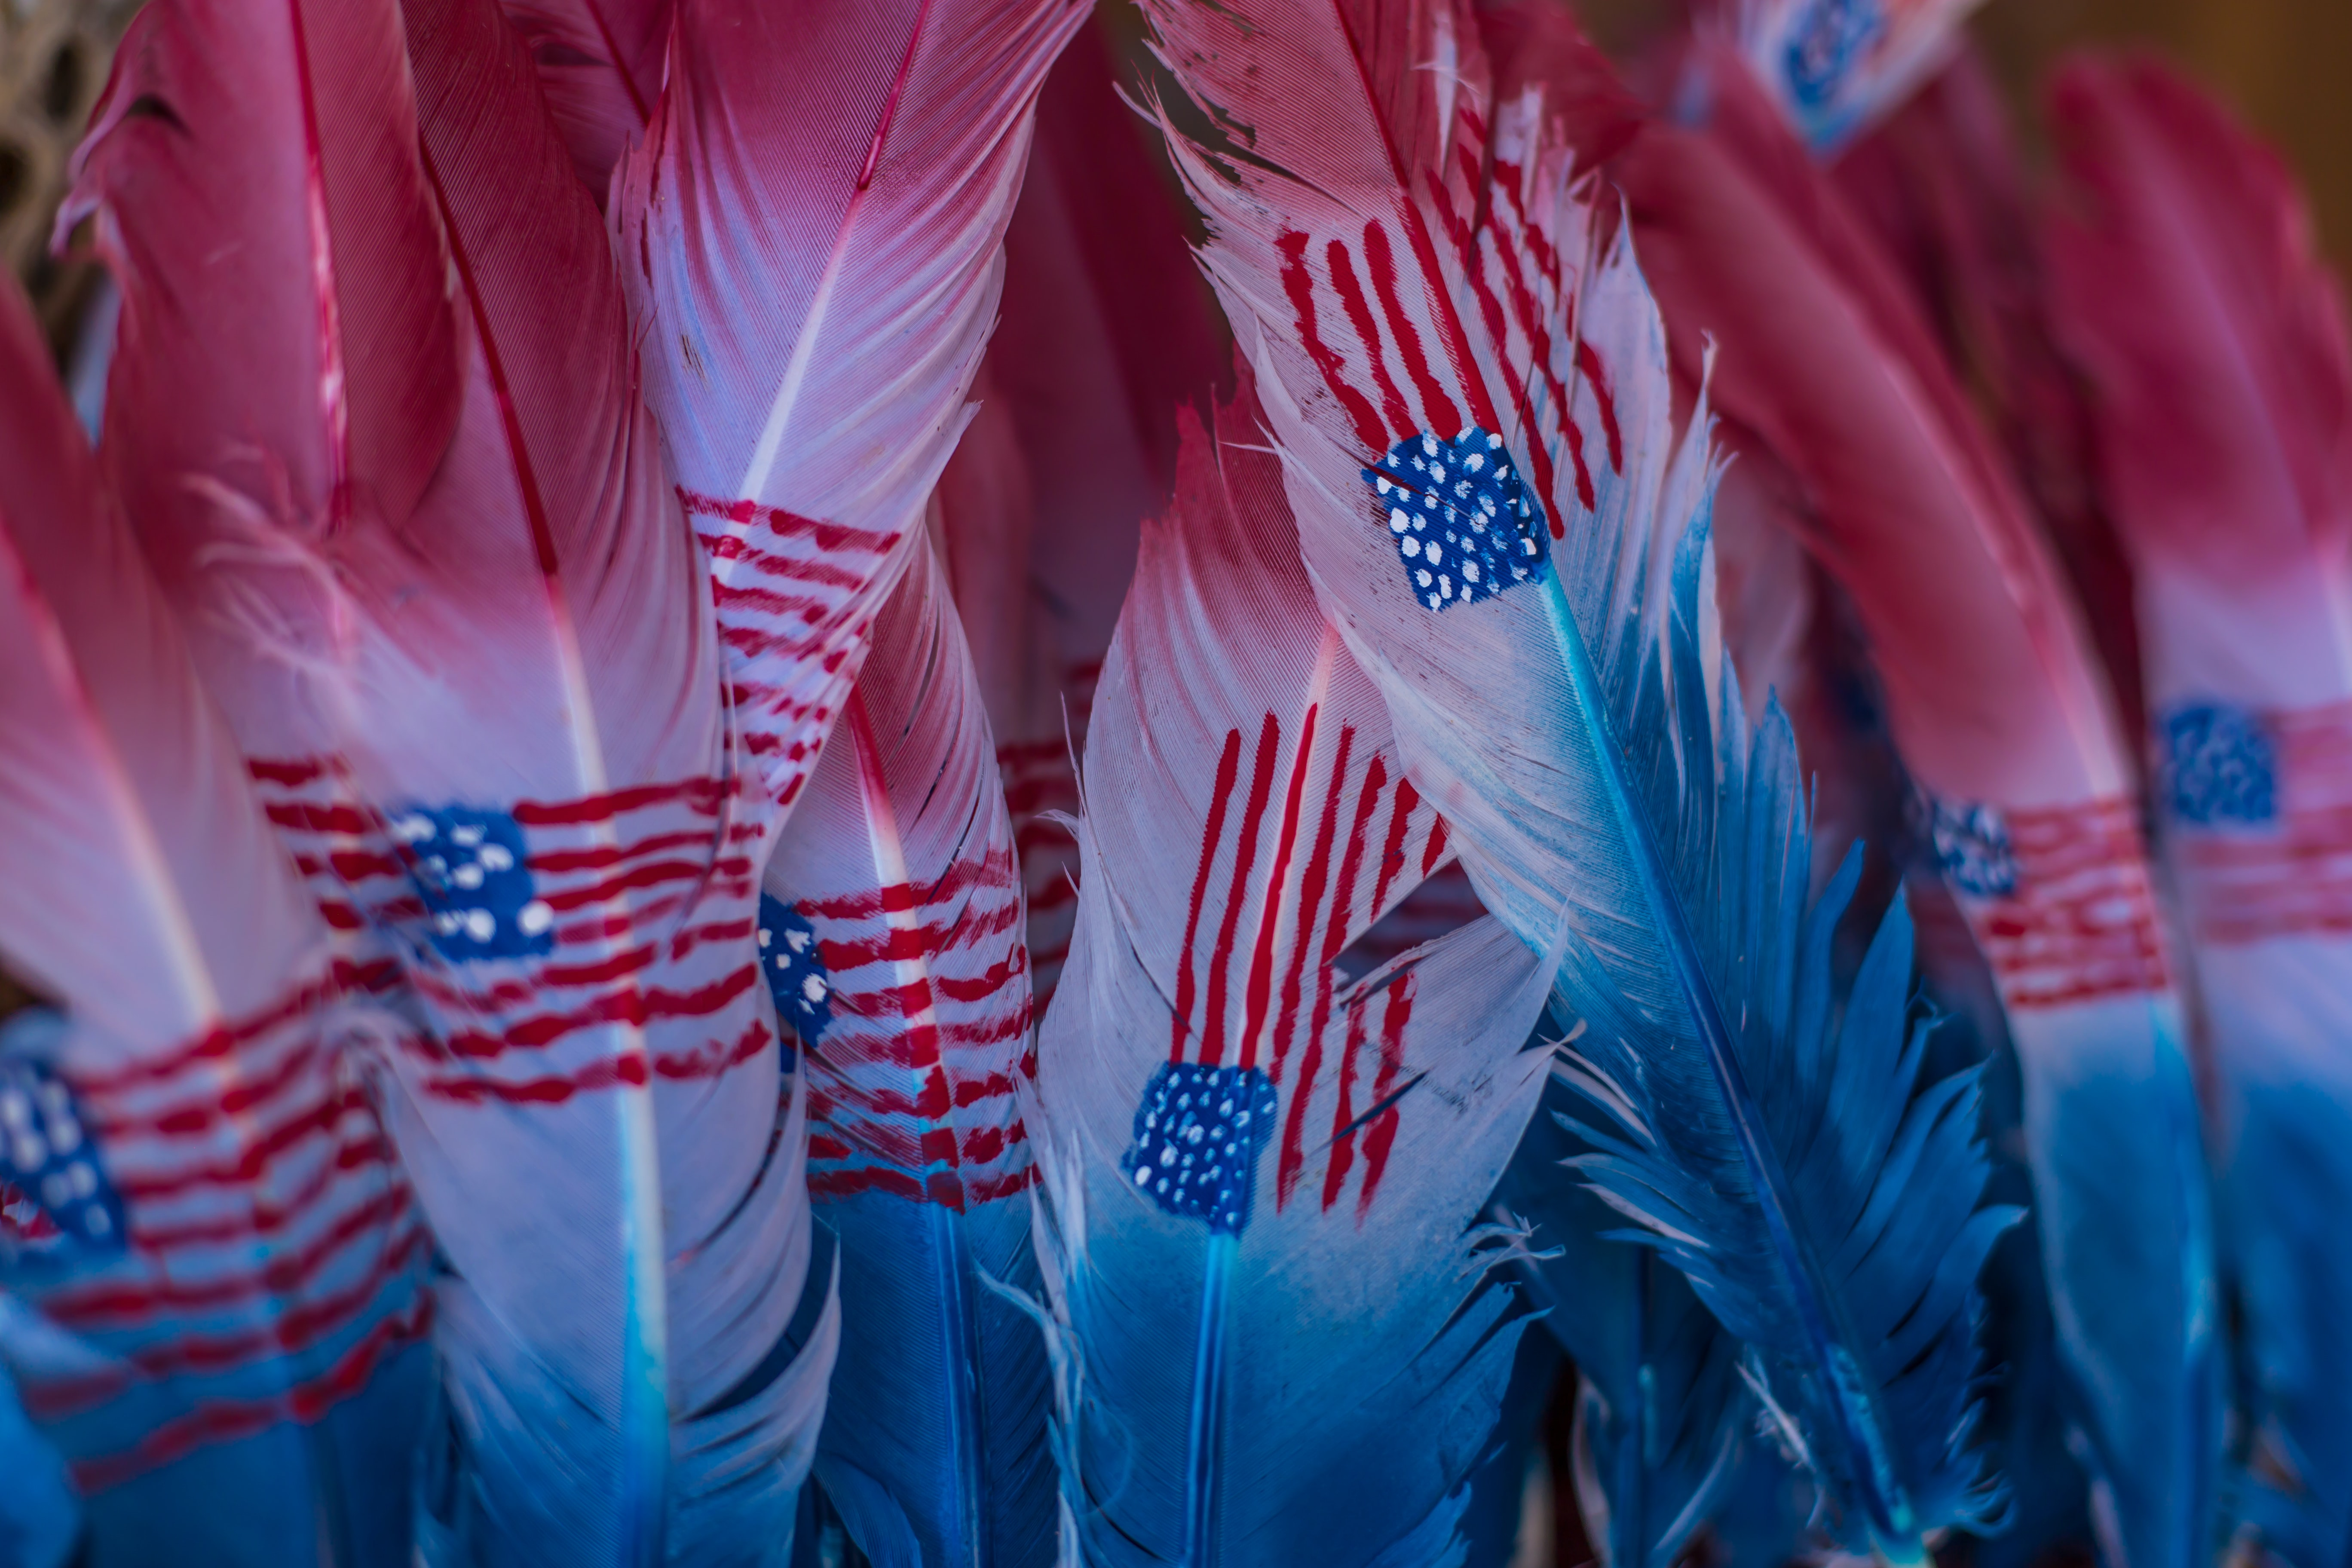 A display of red, white, and blue feathers with American flags painted on them